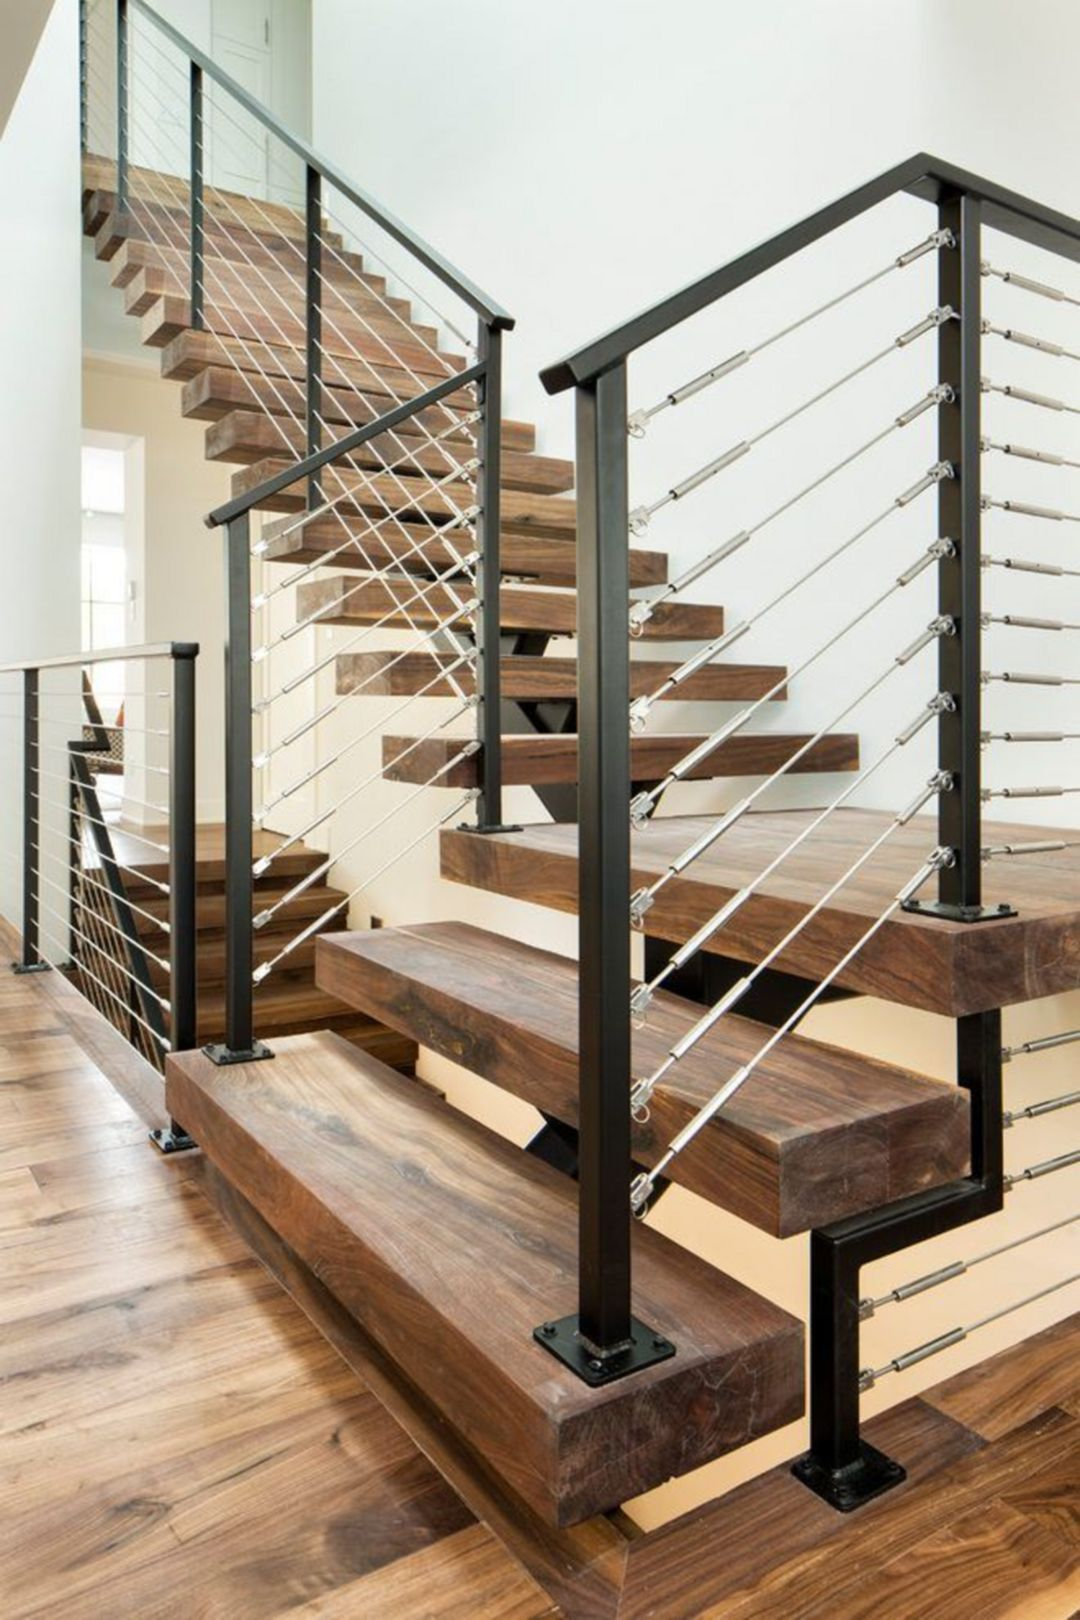 Best 30 Marvelous And Creative Indoor Wood Stairs Design Ideas You Never Seen Before Home Ideas 400 x 300